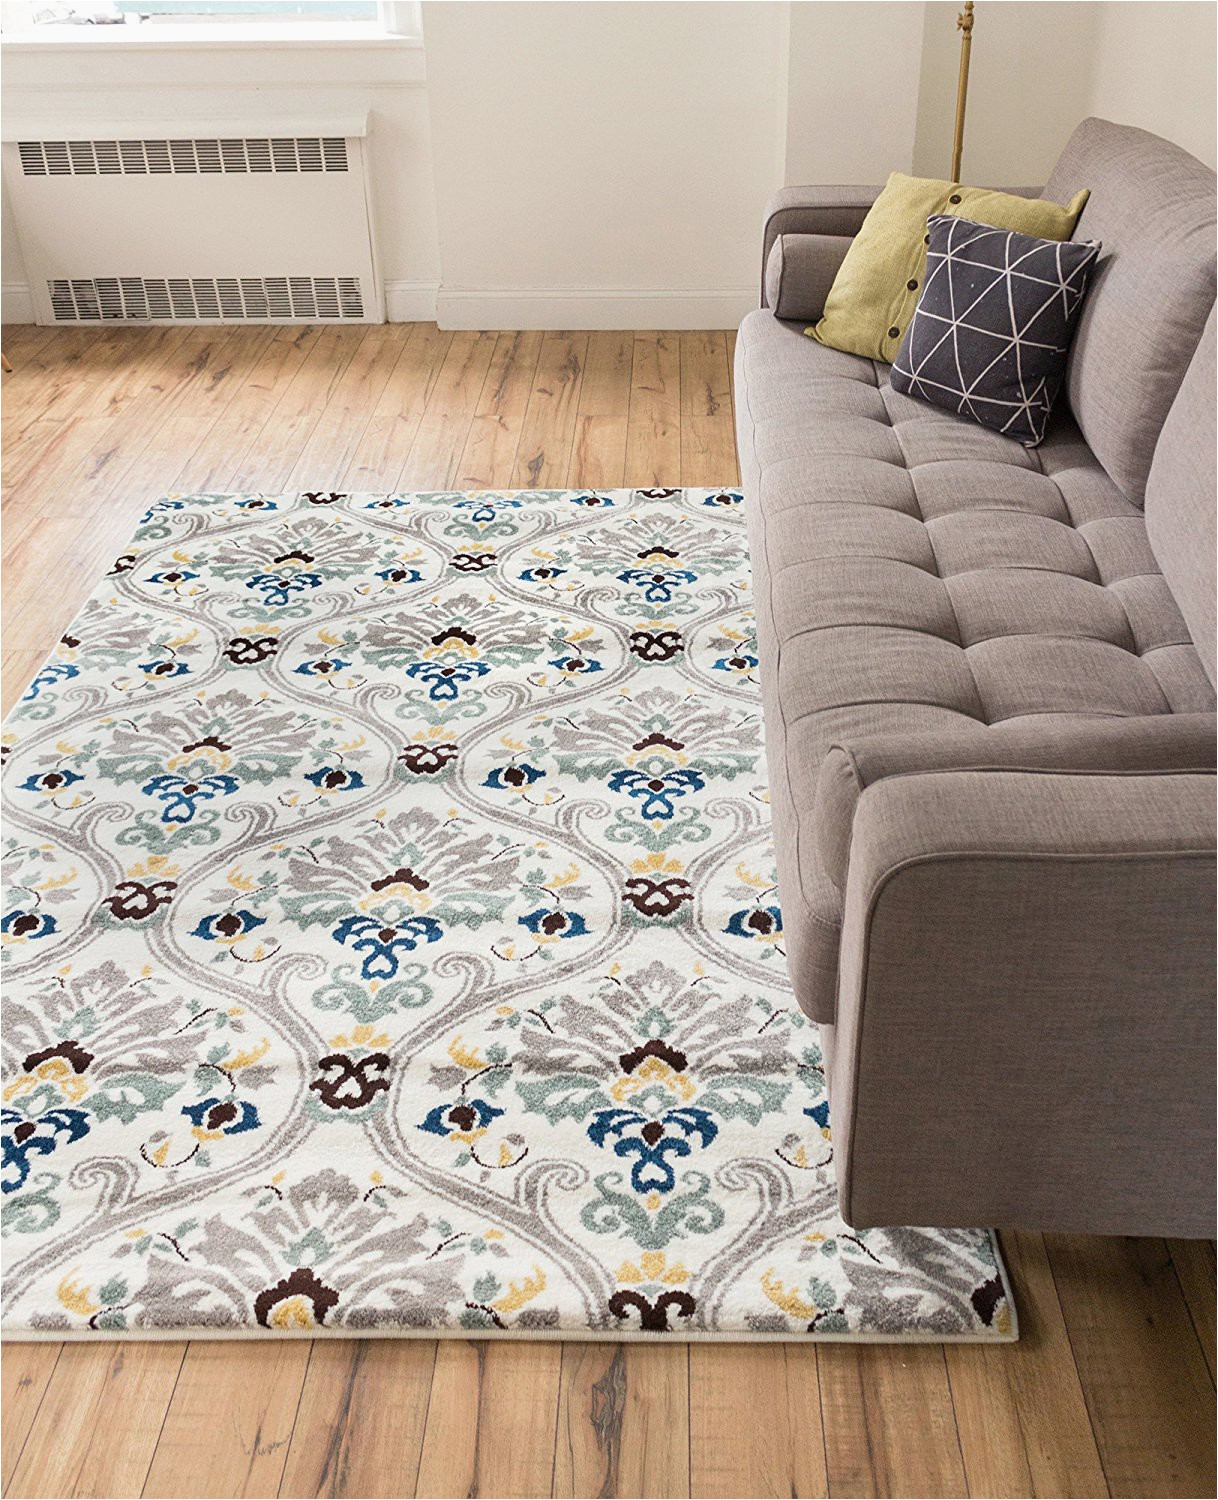 """Grey and White area Rug 5x7 Ogee Waves Lattice Grey Gold Blue Ivory Floral area Rug 5x7 5 3"""" X 7 3"""" Modern oriental Geometric soft Pile Contemporary Carpet Thick Plush Stain"""